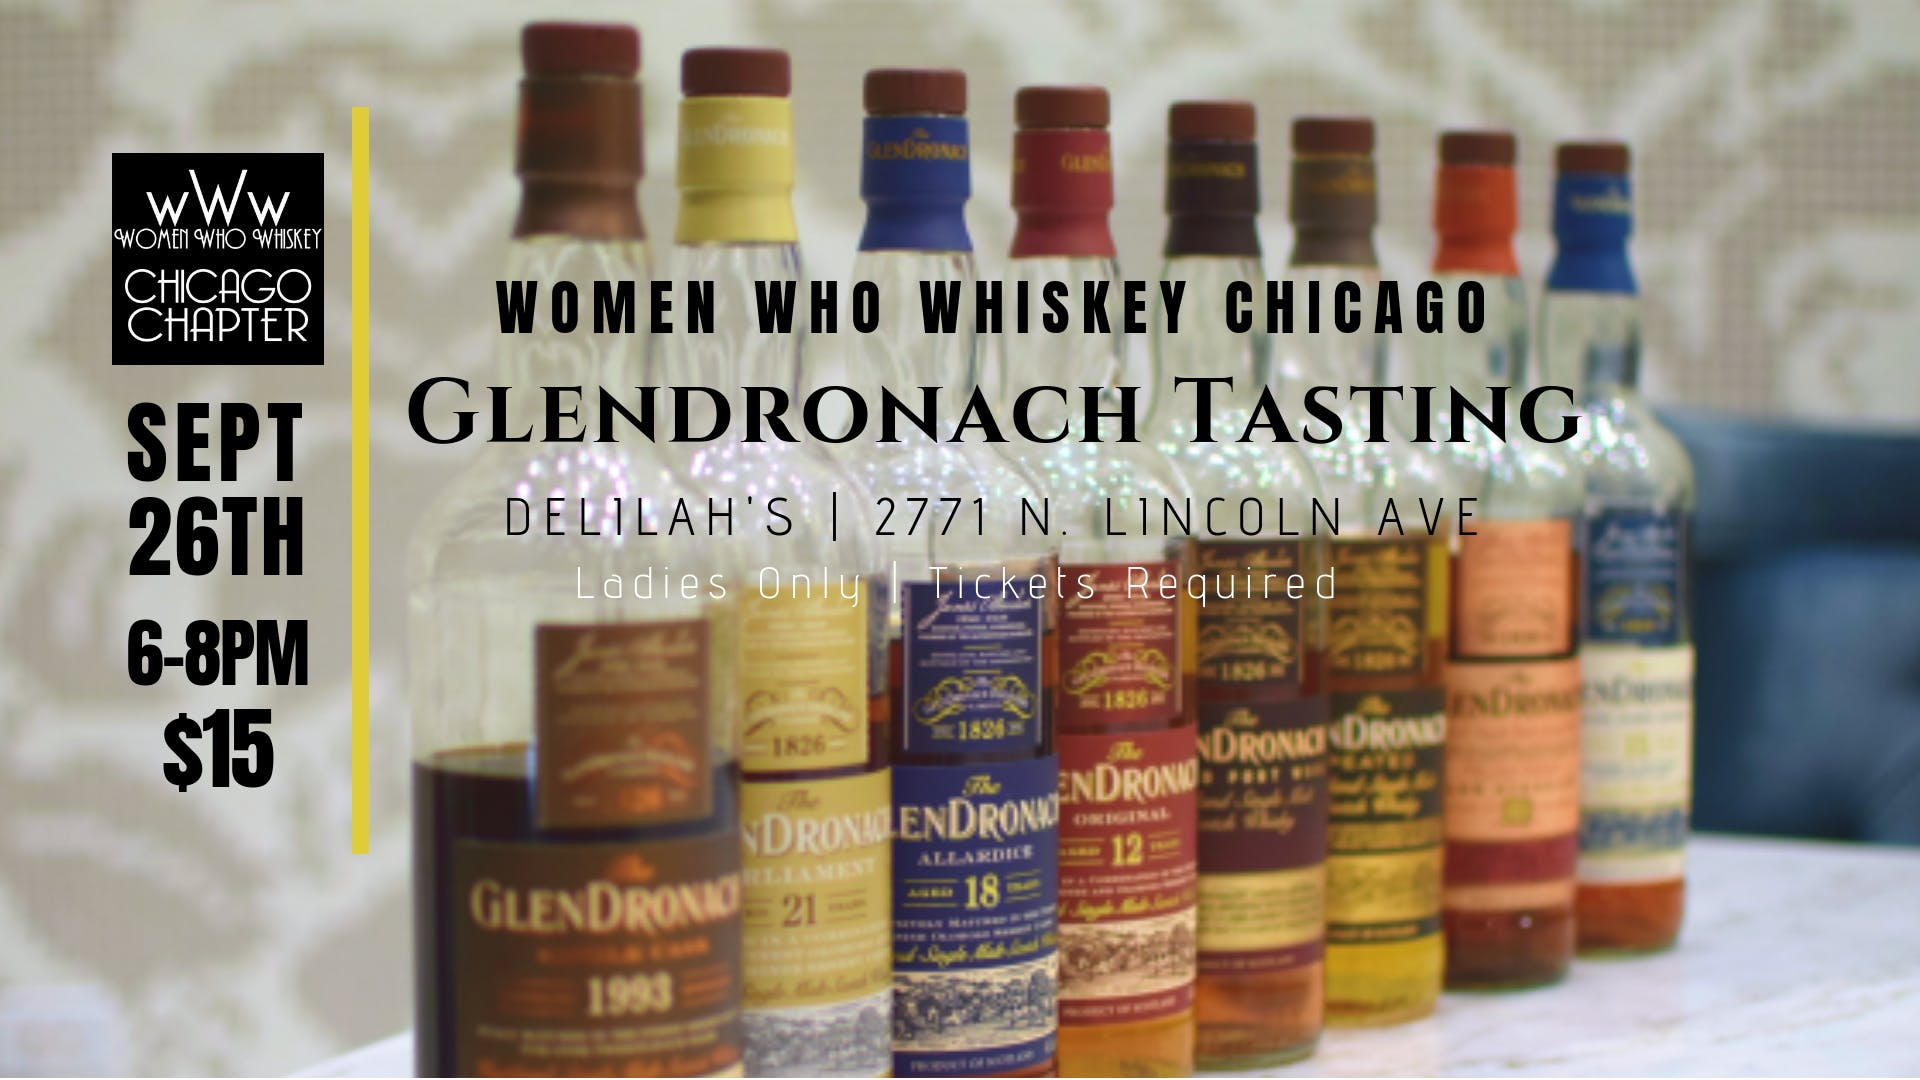 Glendronach Sherry-Aged Whisky Tasting with W